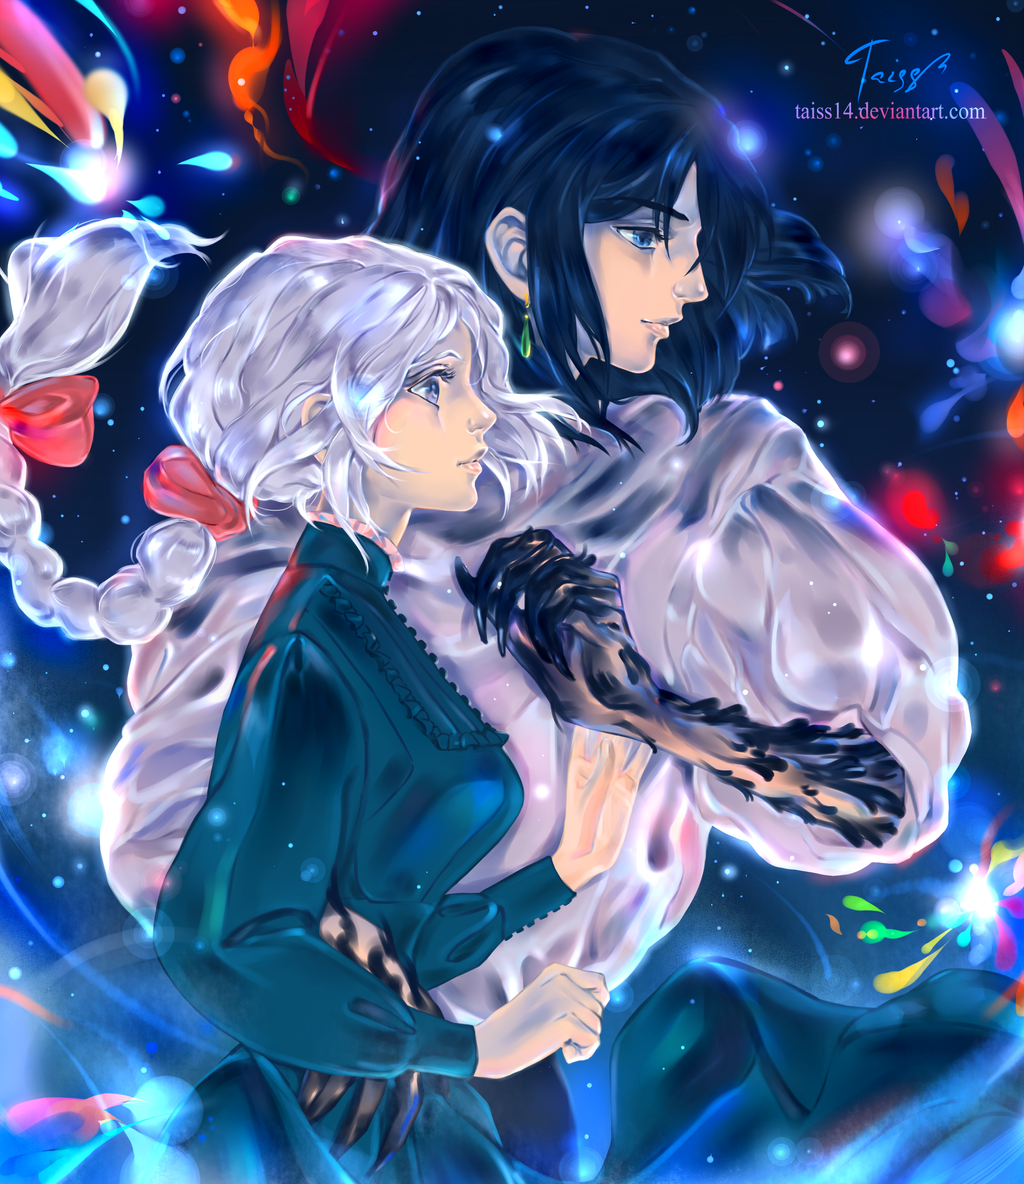 Illusion. Howl's moving castle fanart. by Taiss14